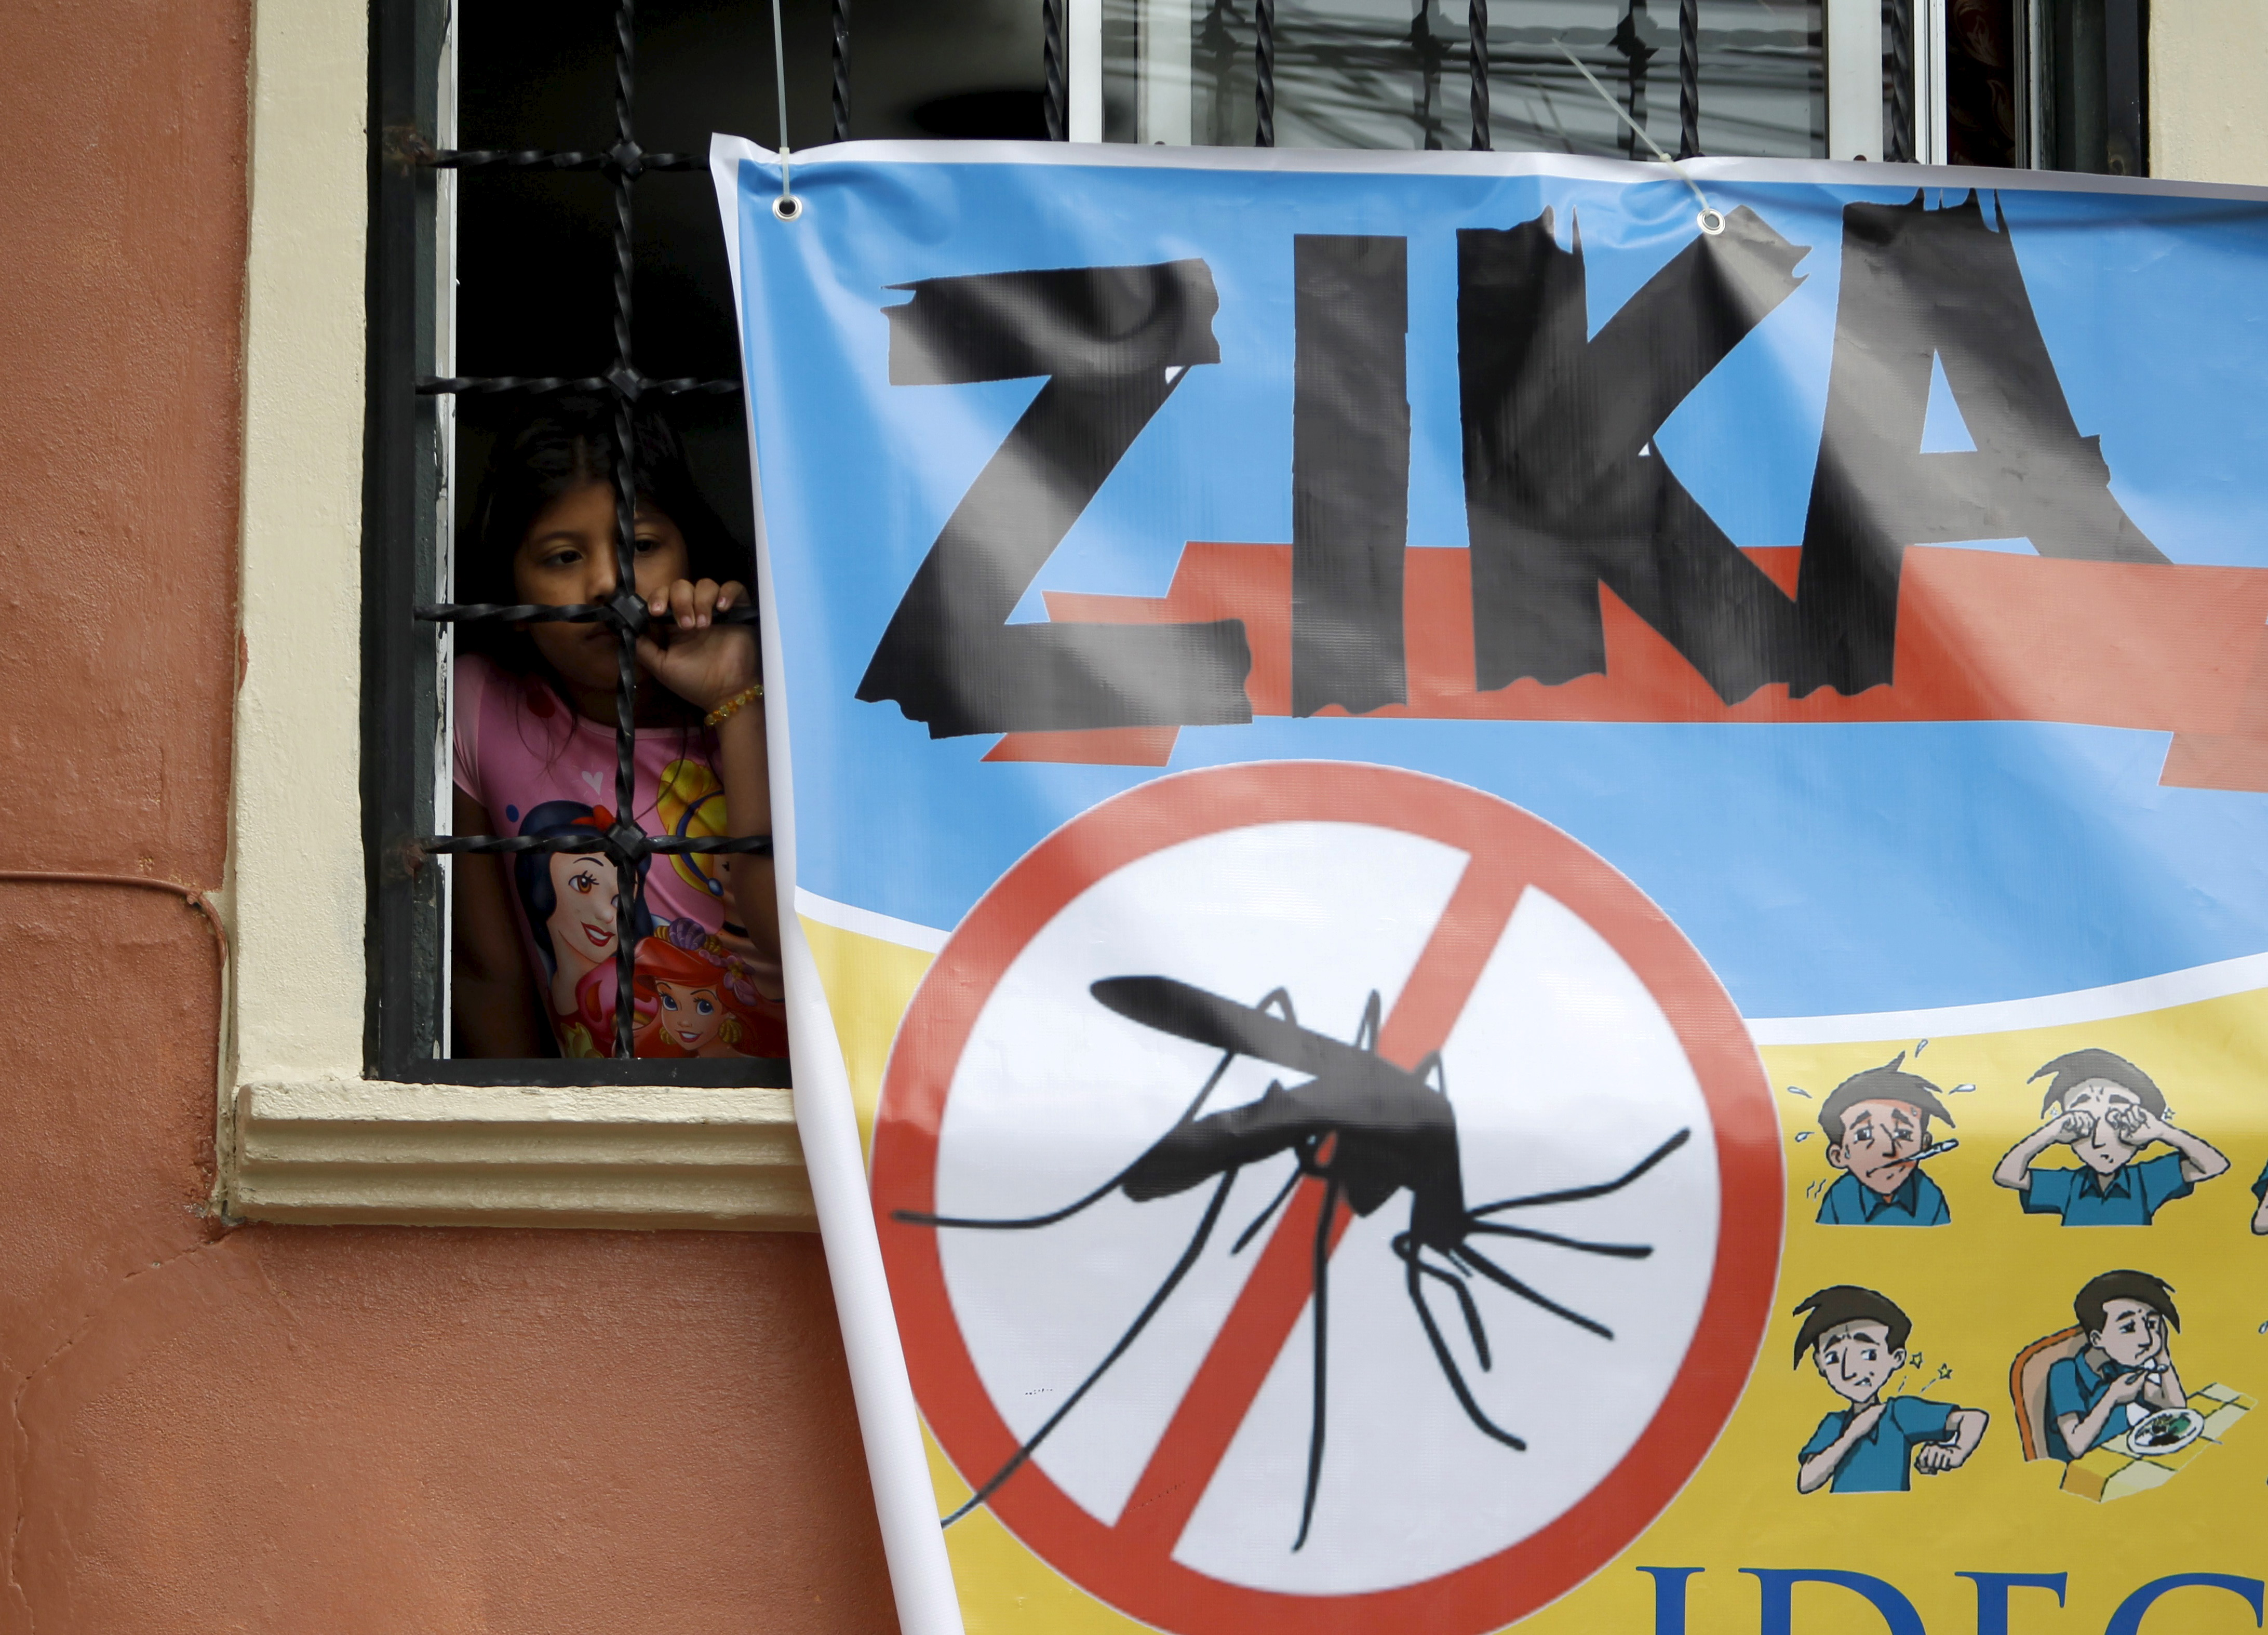 A woman looks on next to a banner as soldiers and municipal health workers take part in cleaning of the streets, gardens and homes as part of the city's efforts to prevent the spread of the Zika virus vector, the Aedes aegypti mosquito, in Tegucigalpa, Honduras, February 6, 2016.